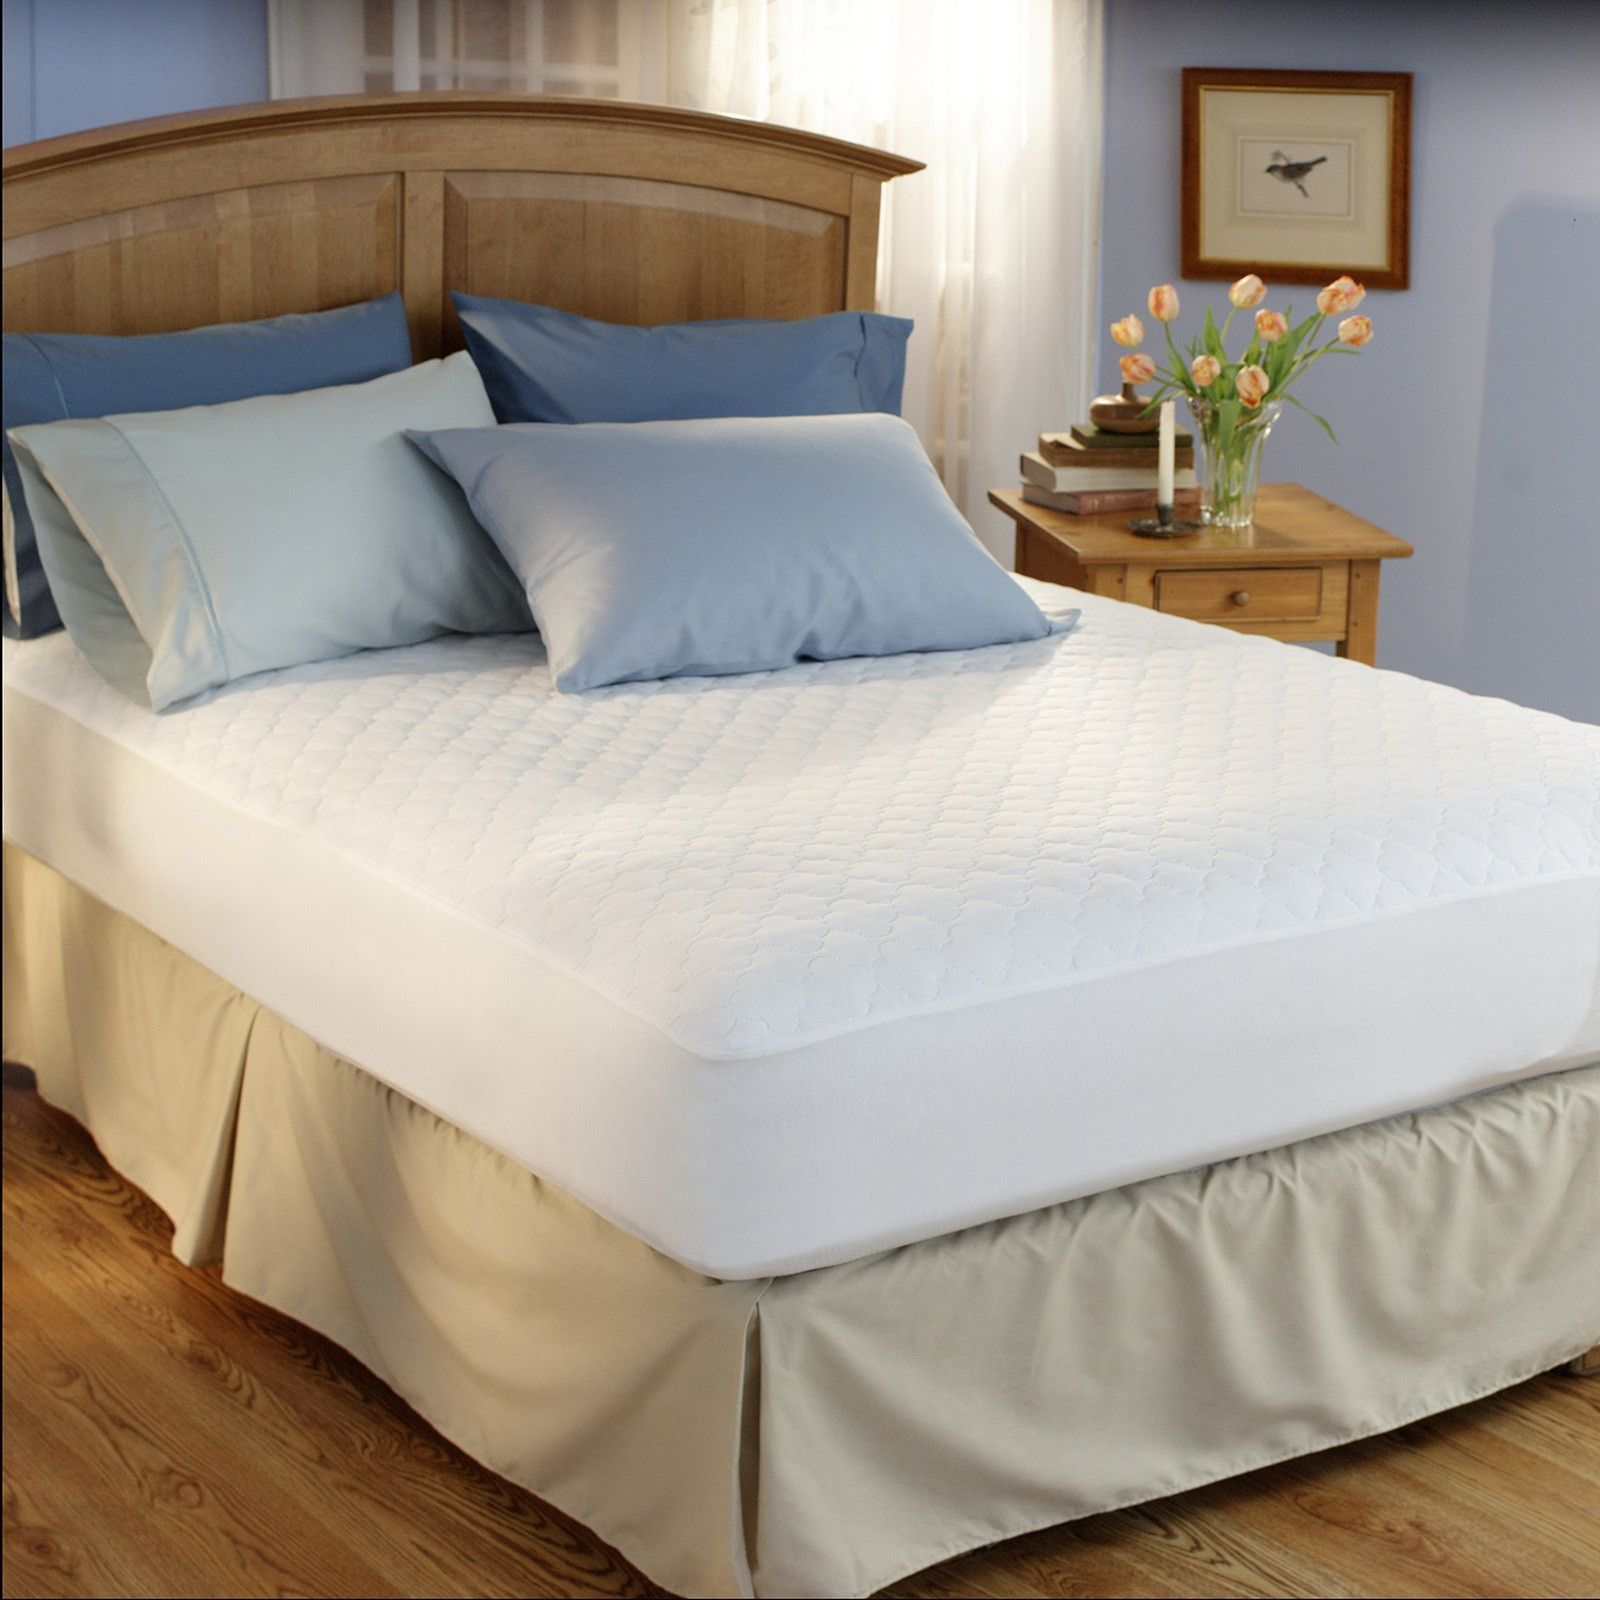 Restful Nights® Easy Rest Economy Mattress Pad (With